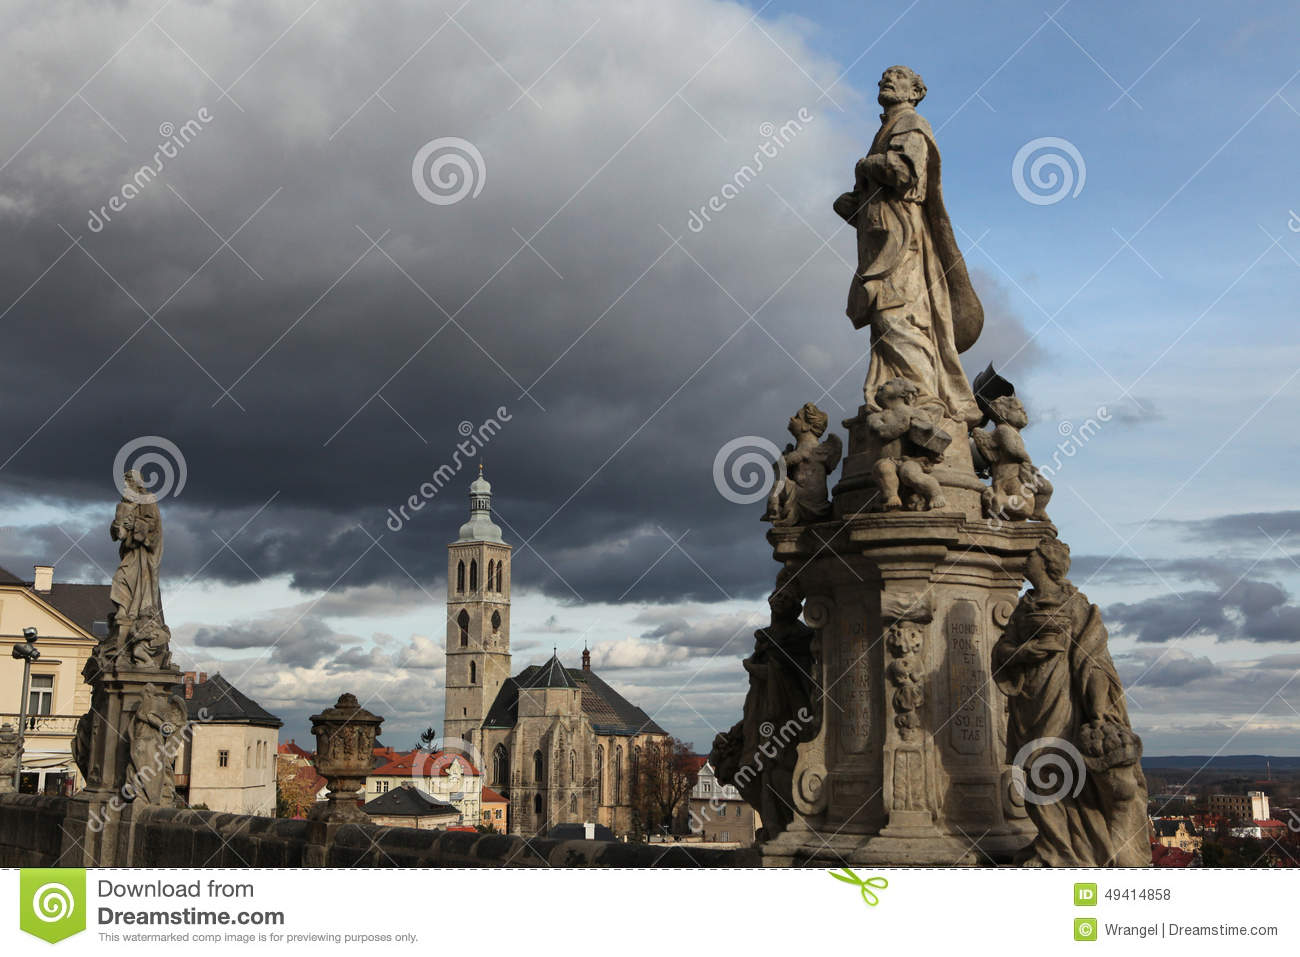 Download St James Church In Kutna Hora, Tschechische Republik Stockfoto - Bild von landschaft, republik: 49414858